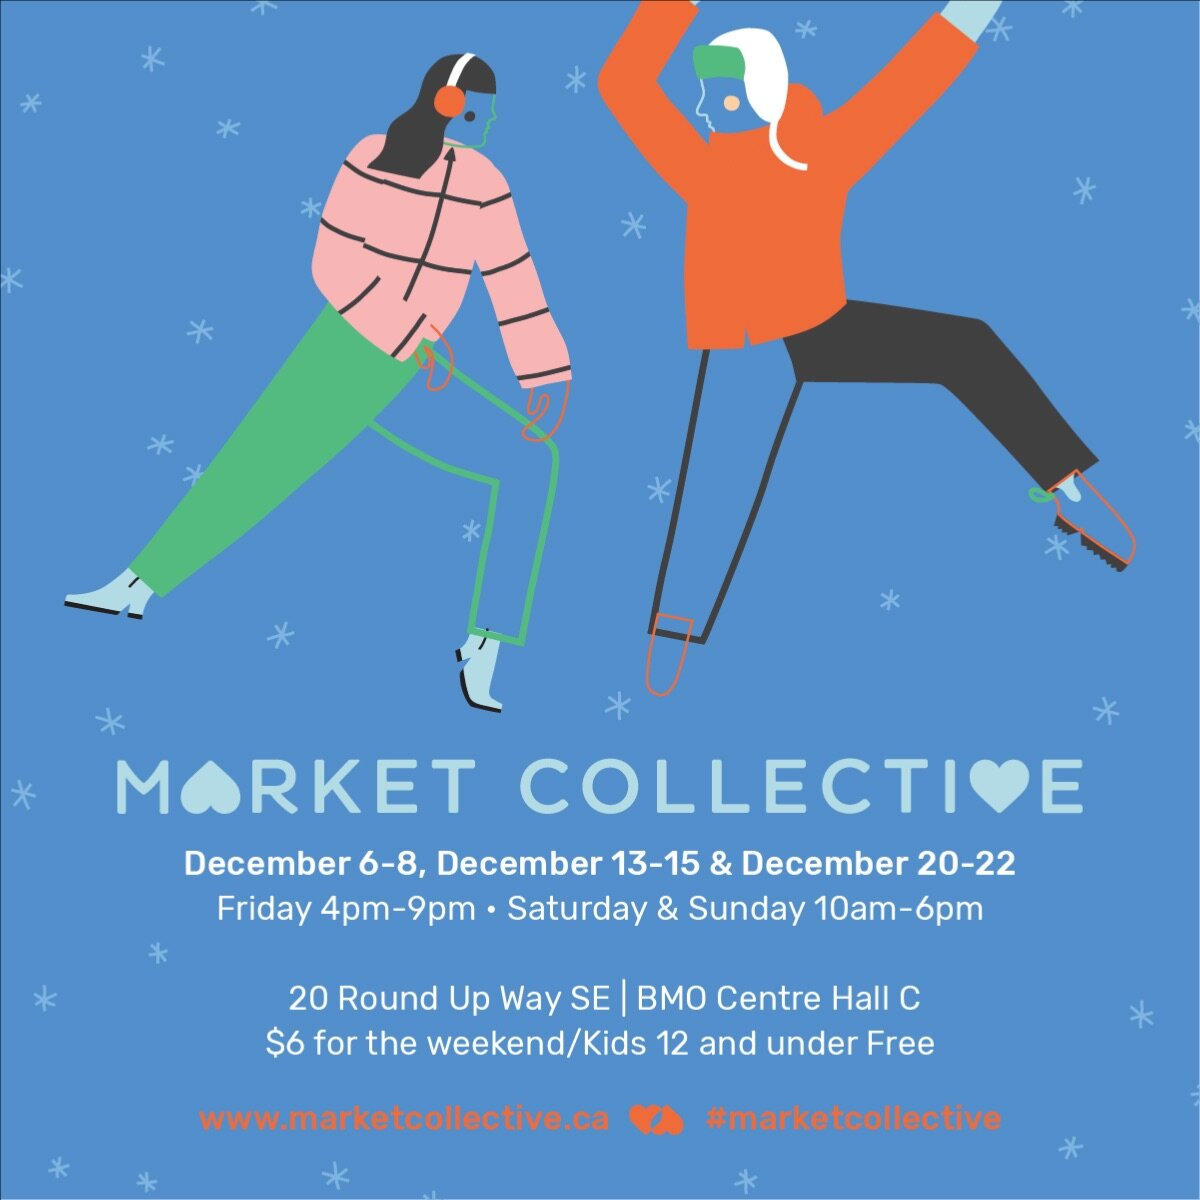 - Market Collective Christmas Edition is coming up soon with 3 weekends to check out!IFK will be set up on December 13-15 with a booth collab featuring Gipsy Tiger Tattoo, Highwood Vintage and La Donna Barber!Details: - 160 Artists, Food Vendors and Special Features each weekend- A stage that will be programmed with: 43 bands, 5 DJ's, and a few dance troops.- A skatepark at the back of the space (designed and painted by local skateboarders + artists).- A kids zone- An installation for people to take photos with- Approximately 10,000 square feet of space licensed with Annex beer- 5 indoor food trucks, as well as Rosso, True Buch, Nitro Bros, Made by Marcus and many other food vendors to keep you feelin' good all weekend.